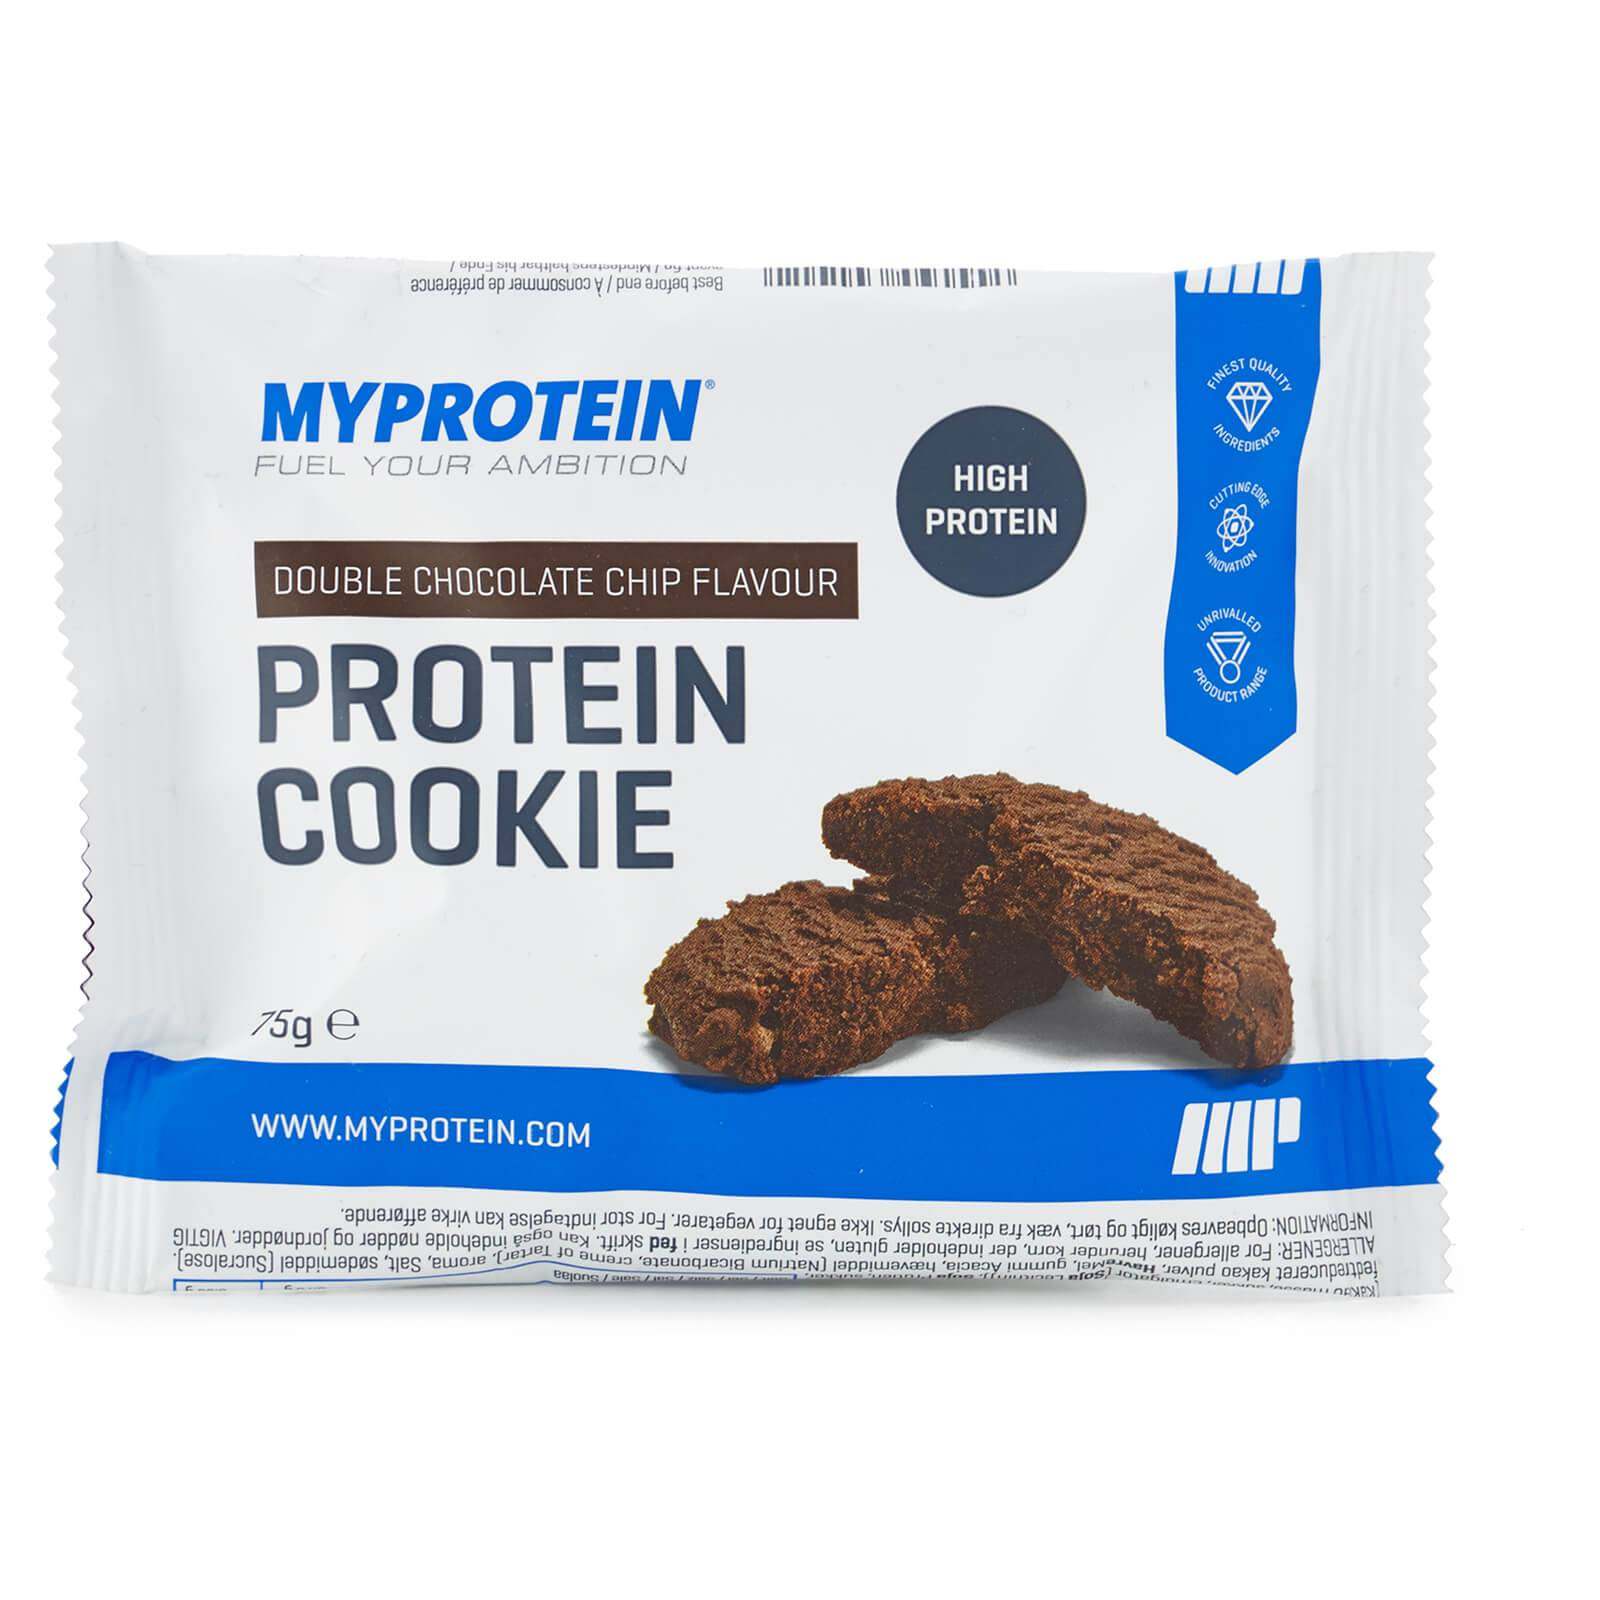 Myprotein Protein Cookie (näyte) - 75g - Cookies & Cream